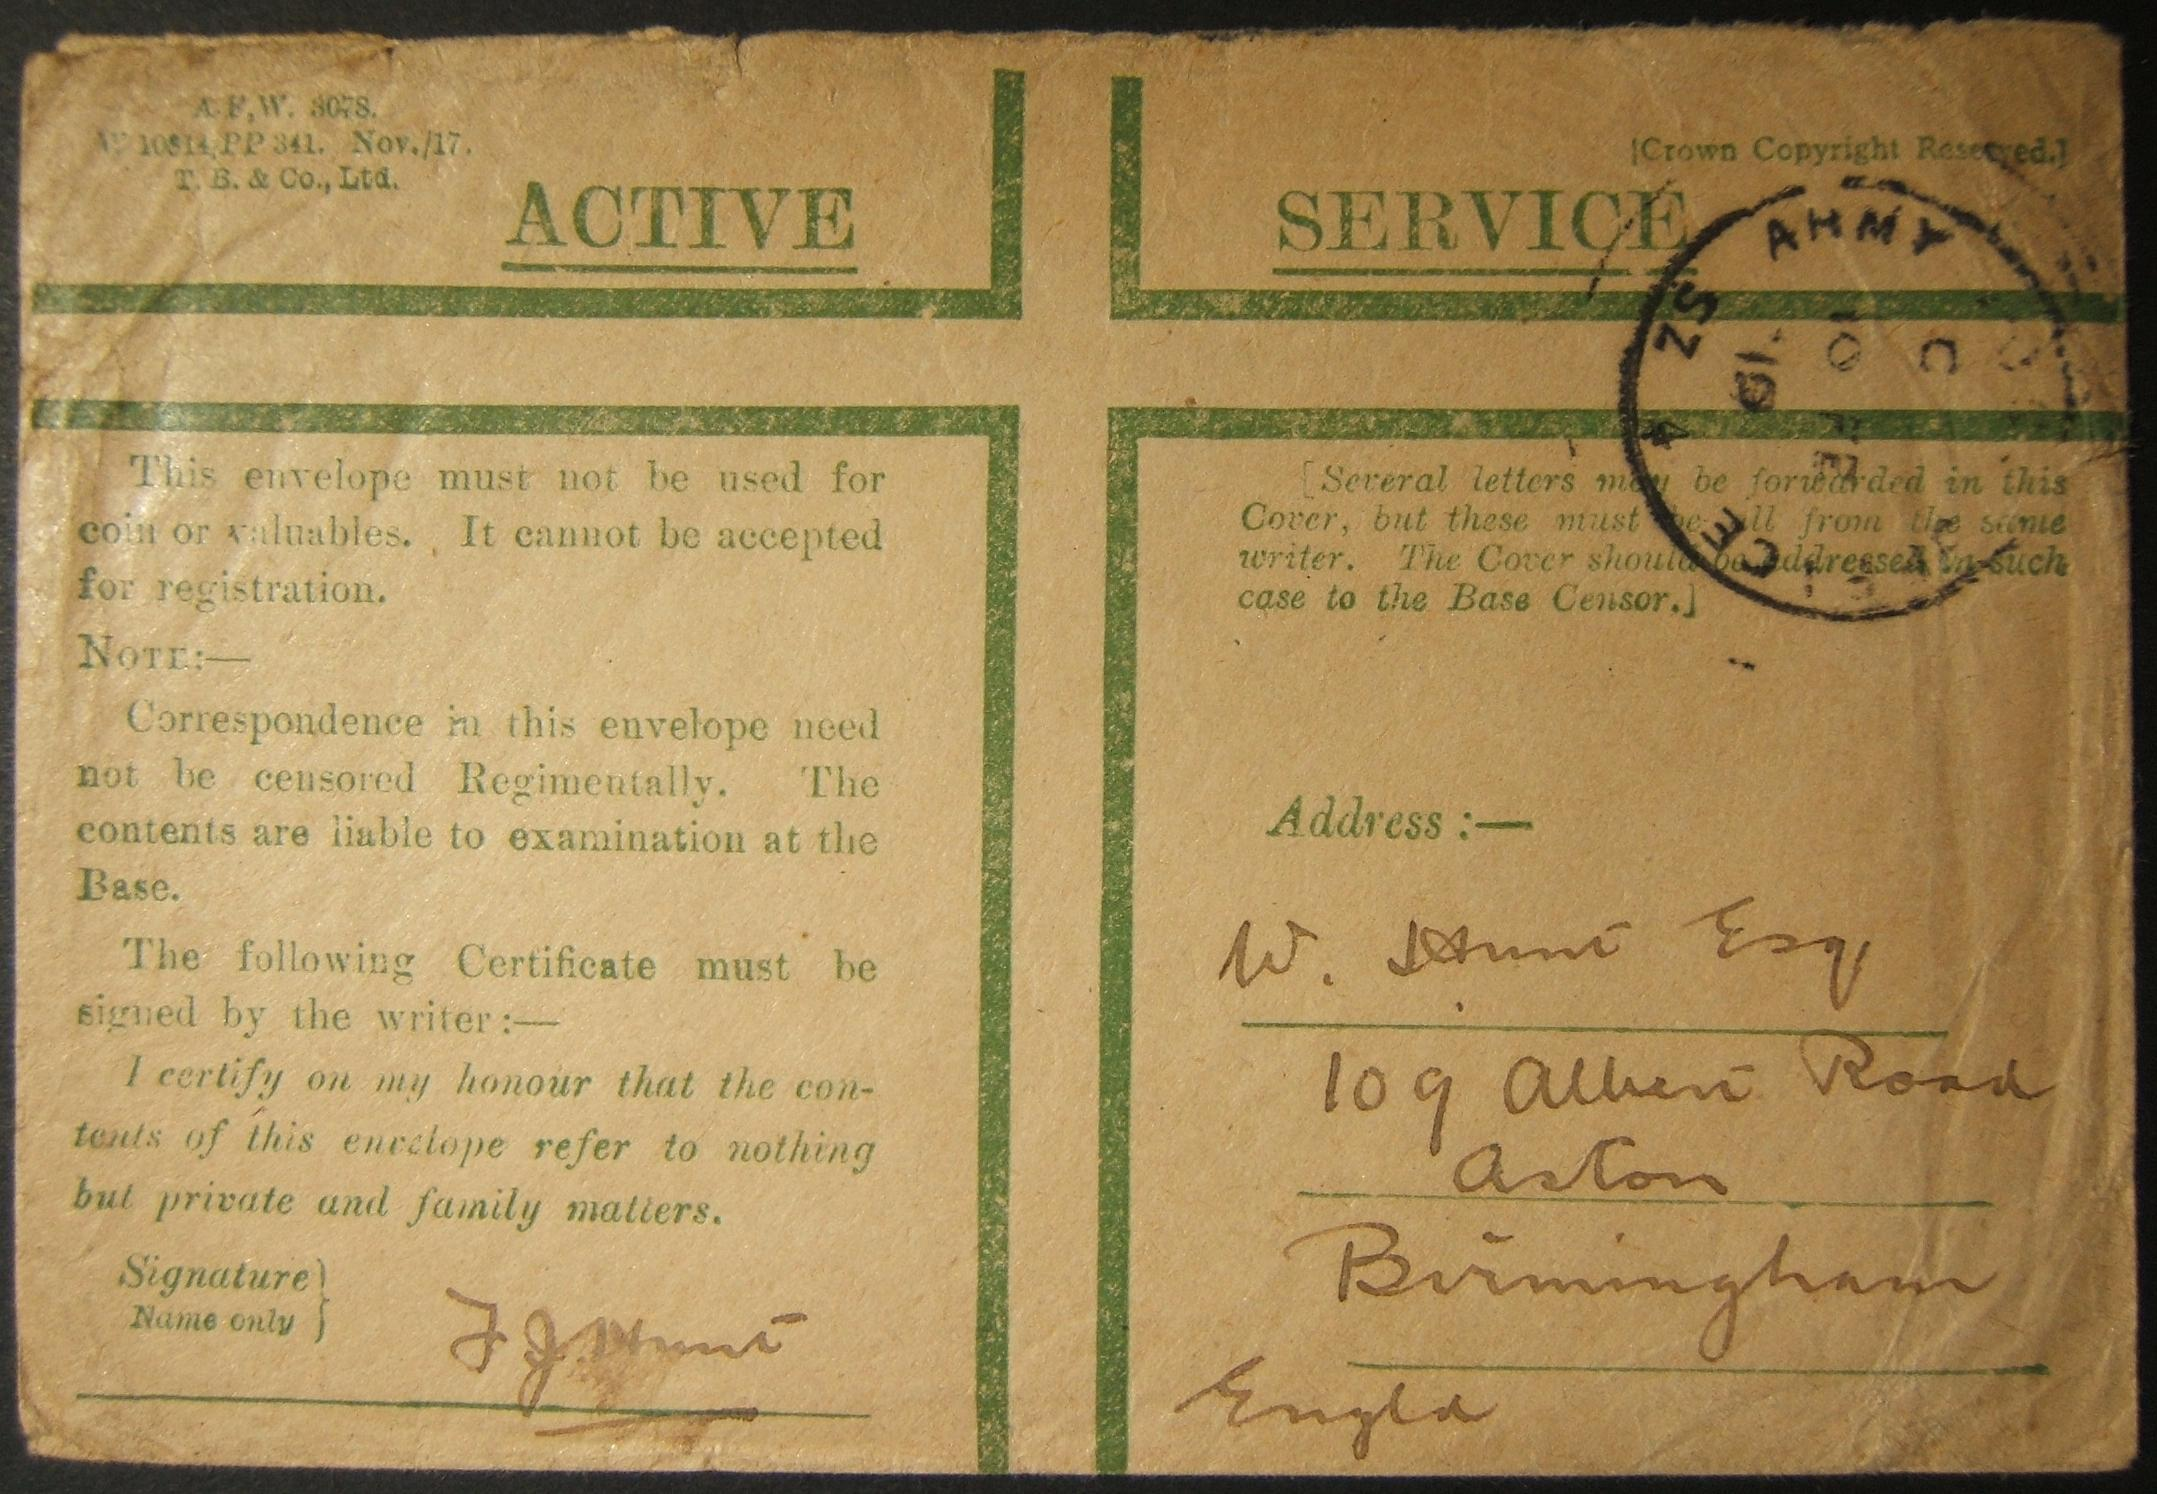 2/1917 WWI Egypt British military mail with unrecorded APO SZ 4 ISMAILIA postmark